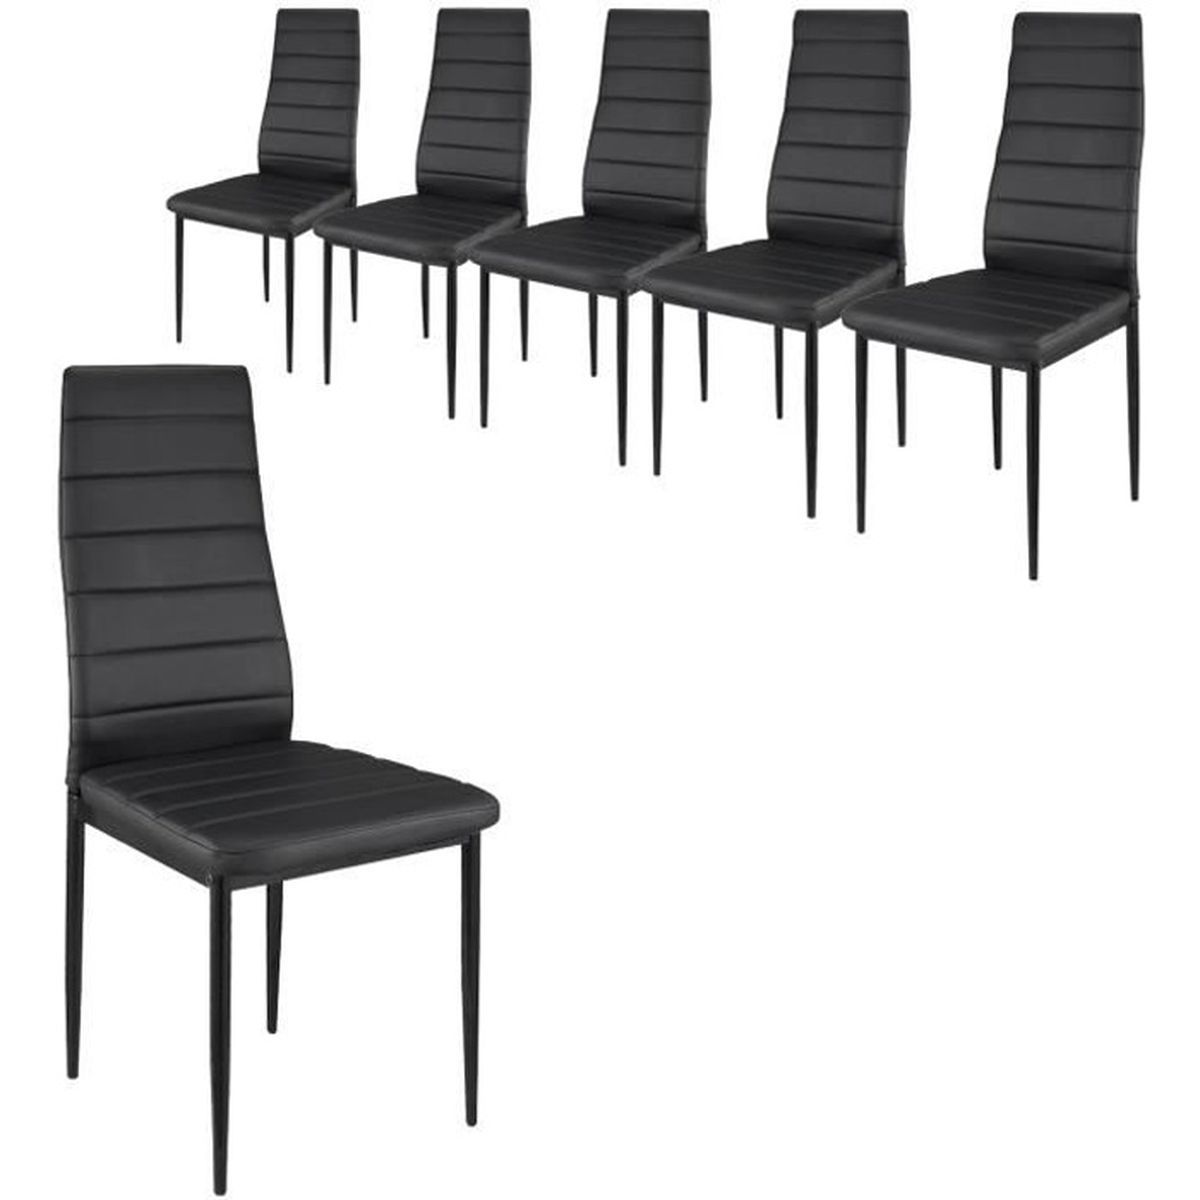 lot 6 chaises cuir noir achat vente lot 6 chaises cuir noir pas cher cdiscount. Black Bedroom Furniture Sets. Home Design Ideas